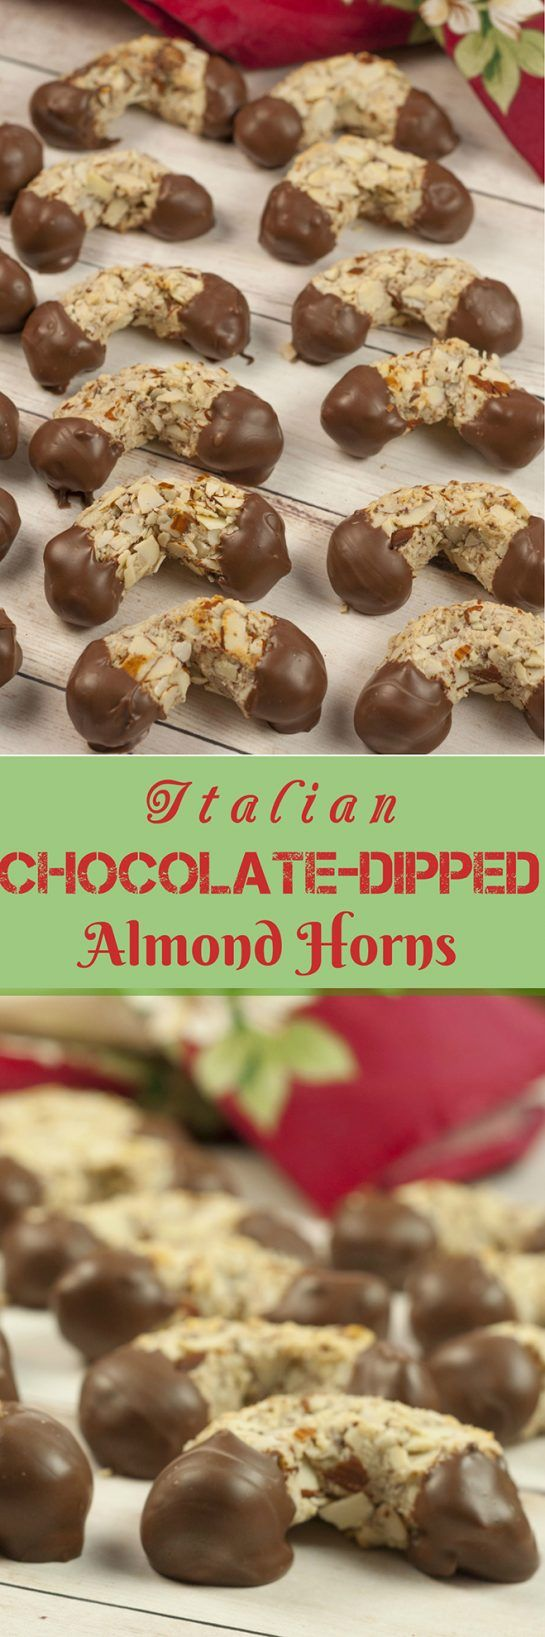 Grandma's Traditional Italian Chocolate-Dipped Almond Horns recipe - horseshoe-shaped crescent cookies that are moist and chewy on the inside with a crunchy almond texture on the outside.